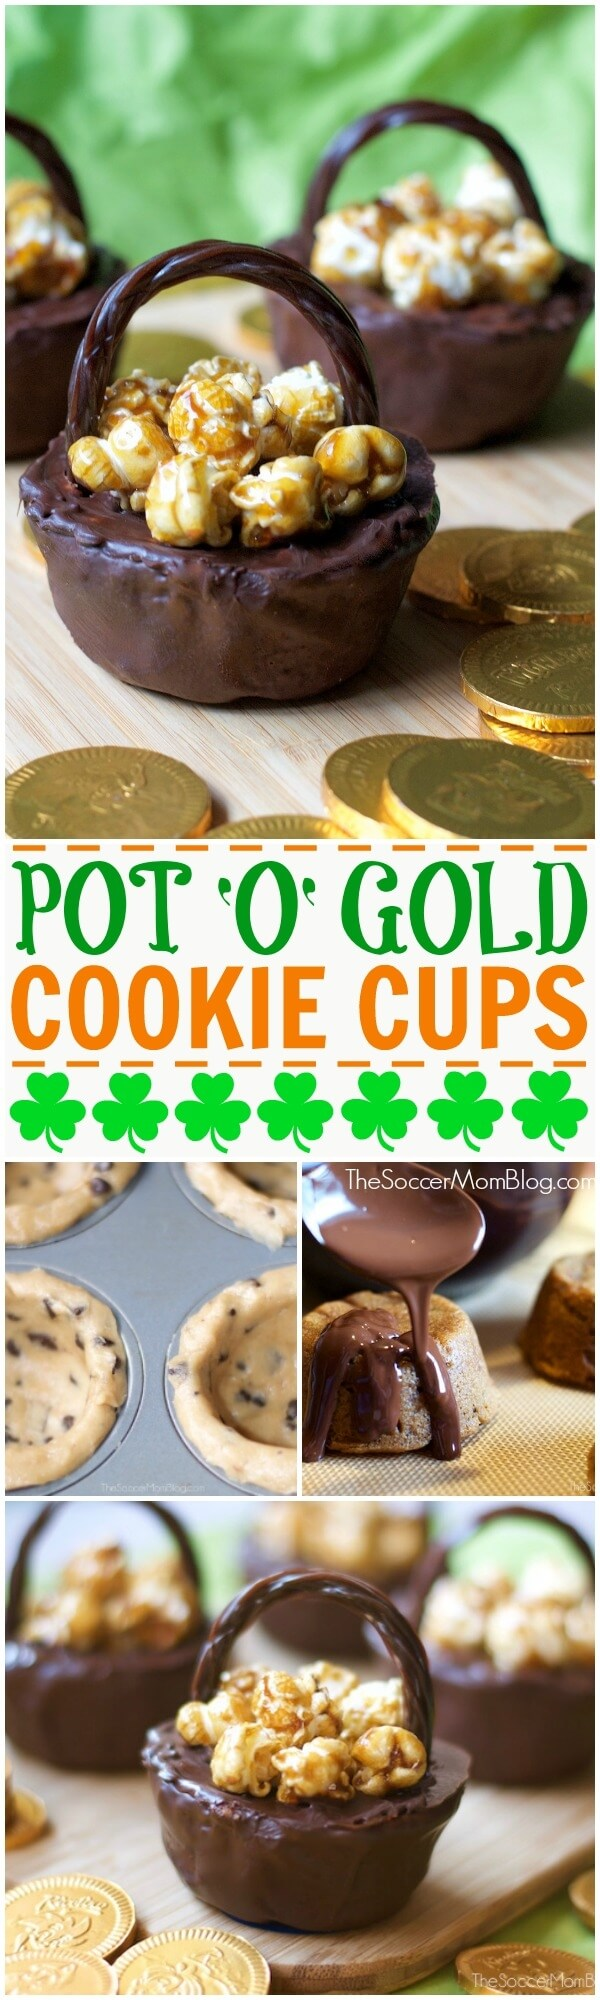 Fun & easy to make (only 4 ingredients!) St. Patrick's Day Cookie Cups look like a pot of gold! (Or chocolate!) A perfect holiday dessert to make with kids!